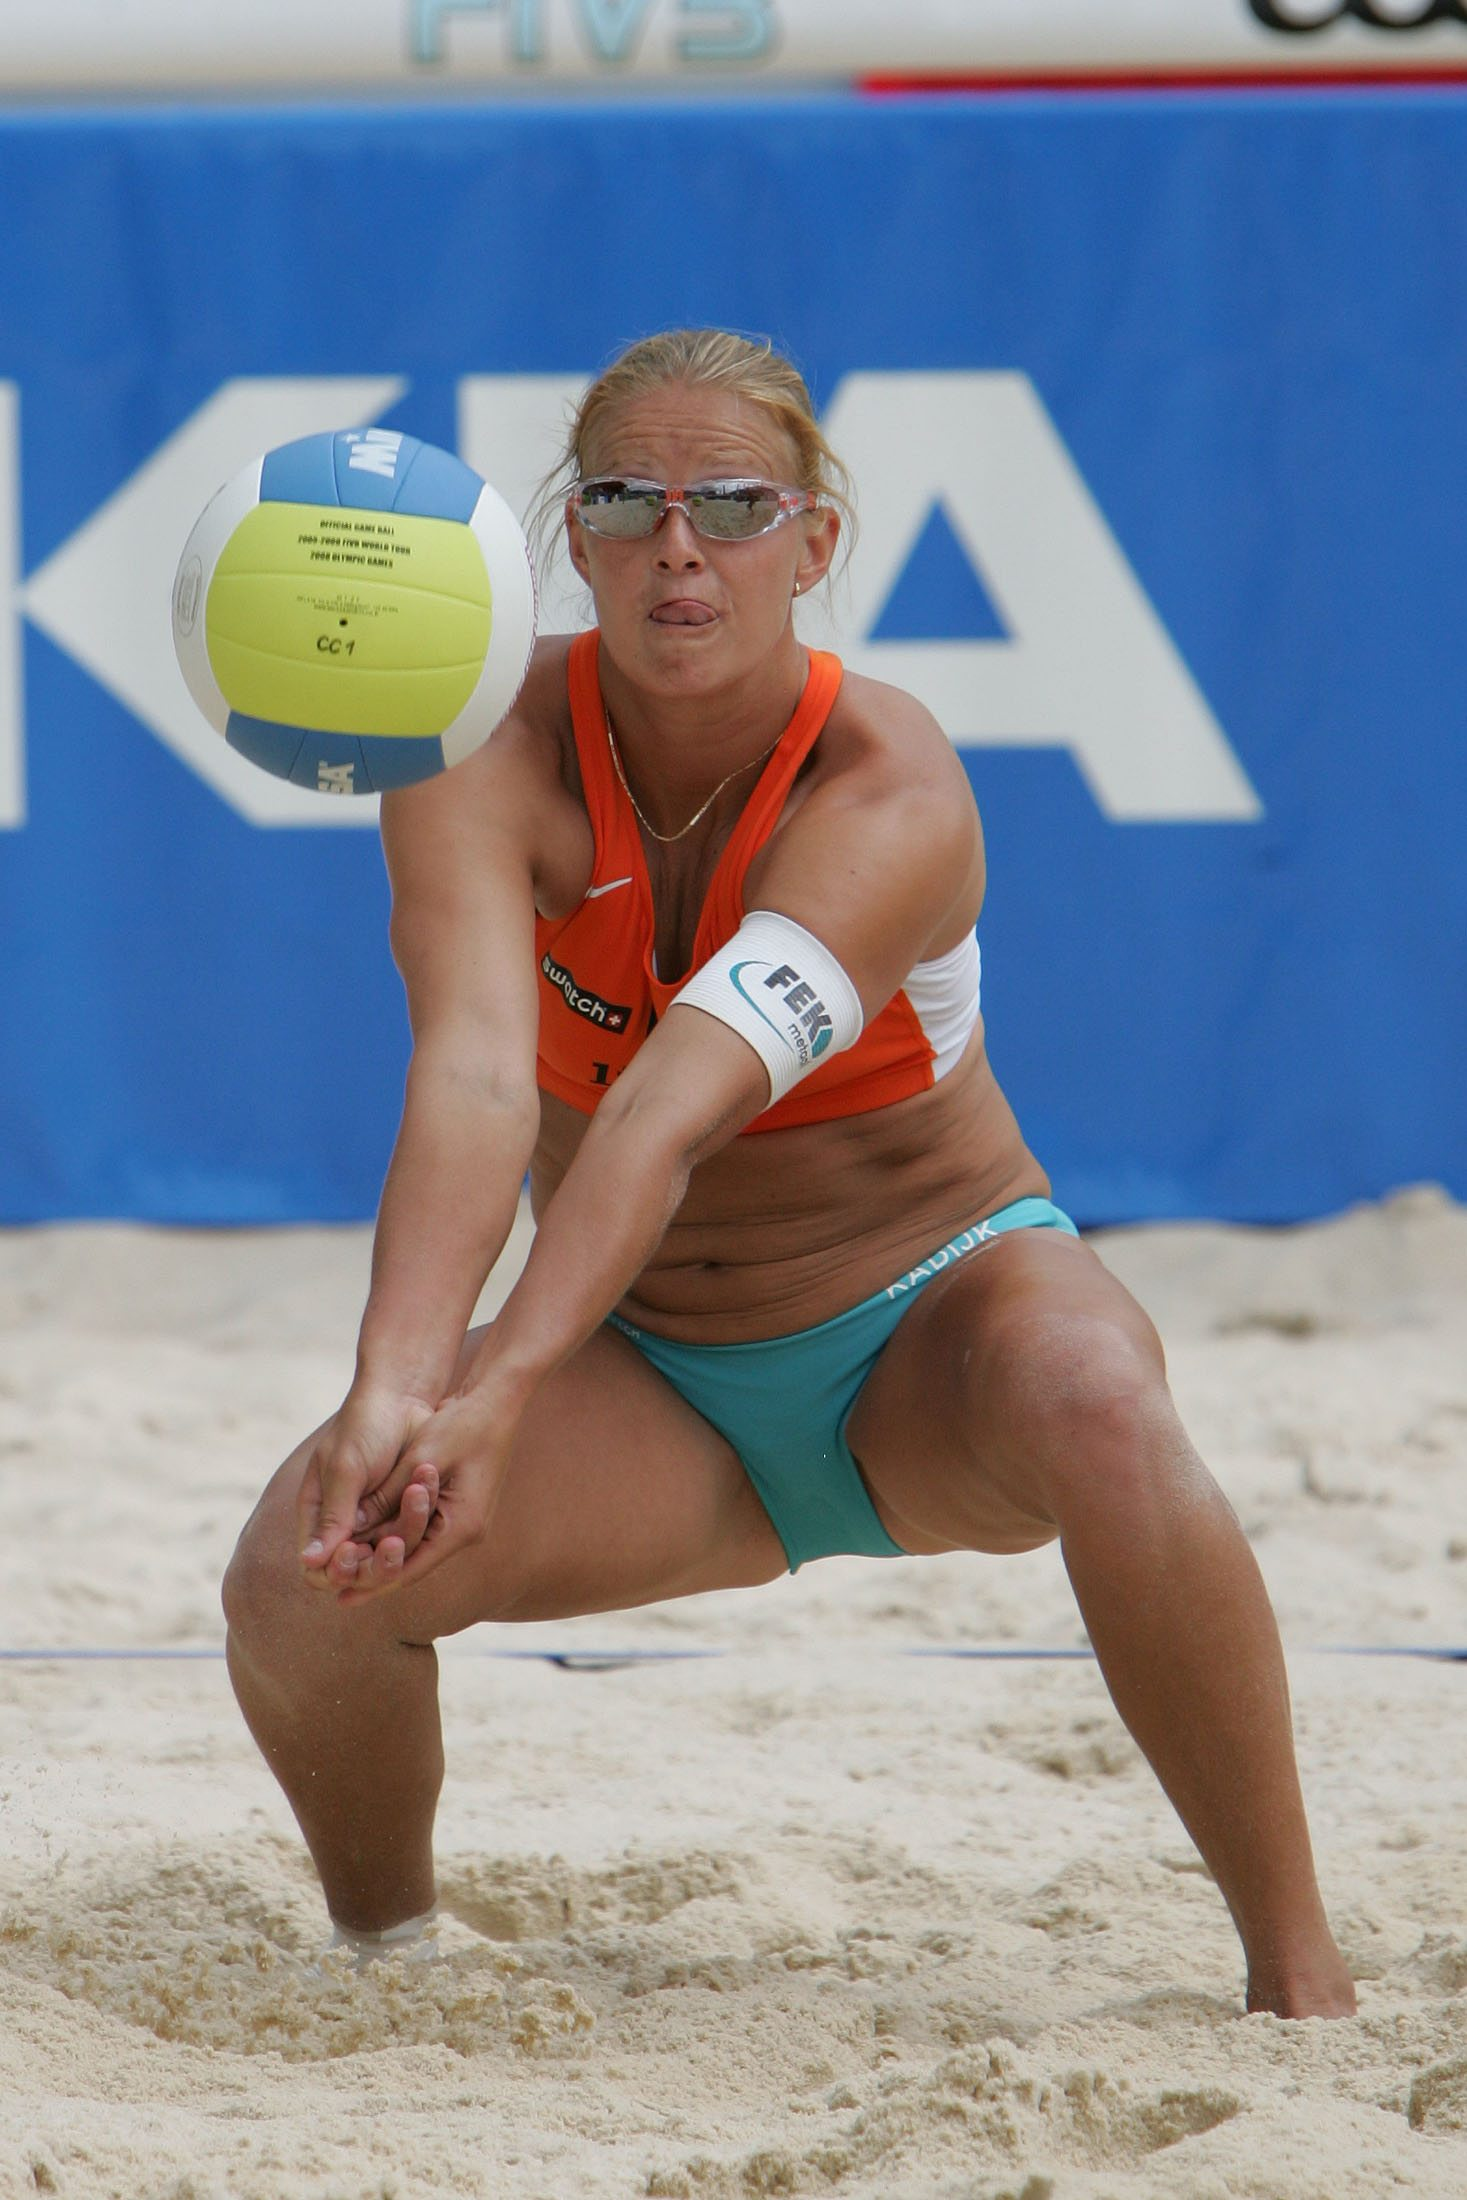 Remarkable, and Nudes beach volleyball women slips consider